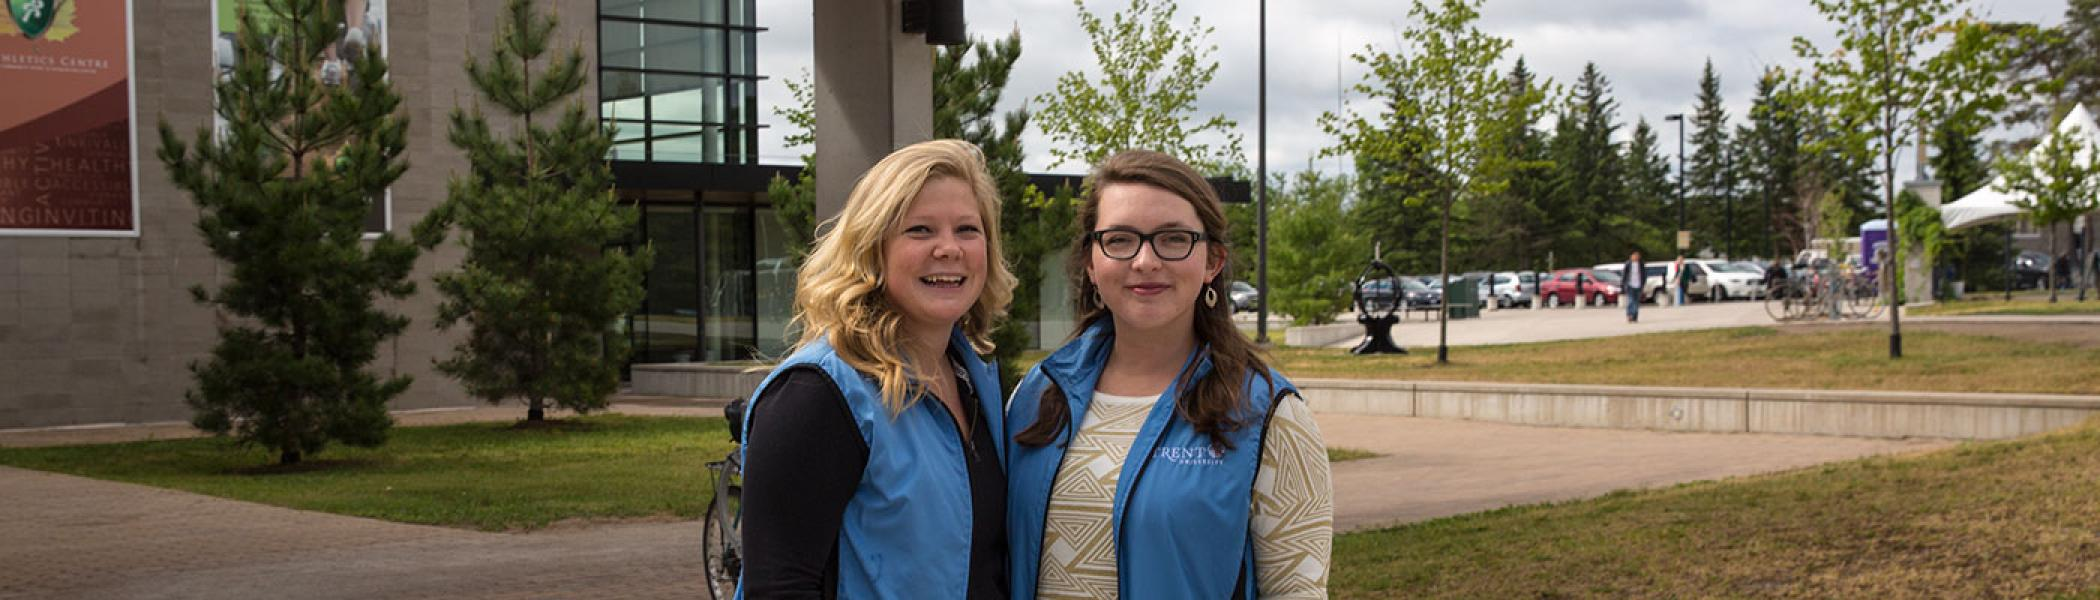 Two women dressed in the blue Trent University convocation vests, smiling at te camera, outside in front of the Atheltic's Centre